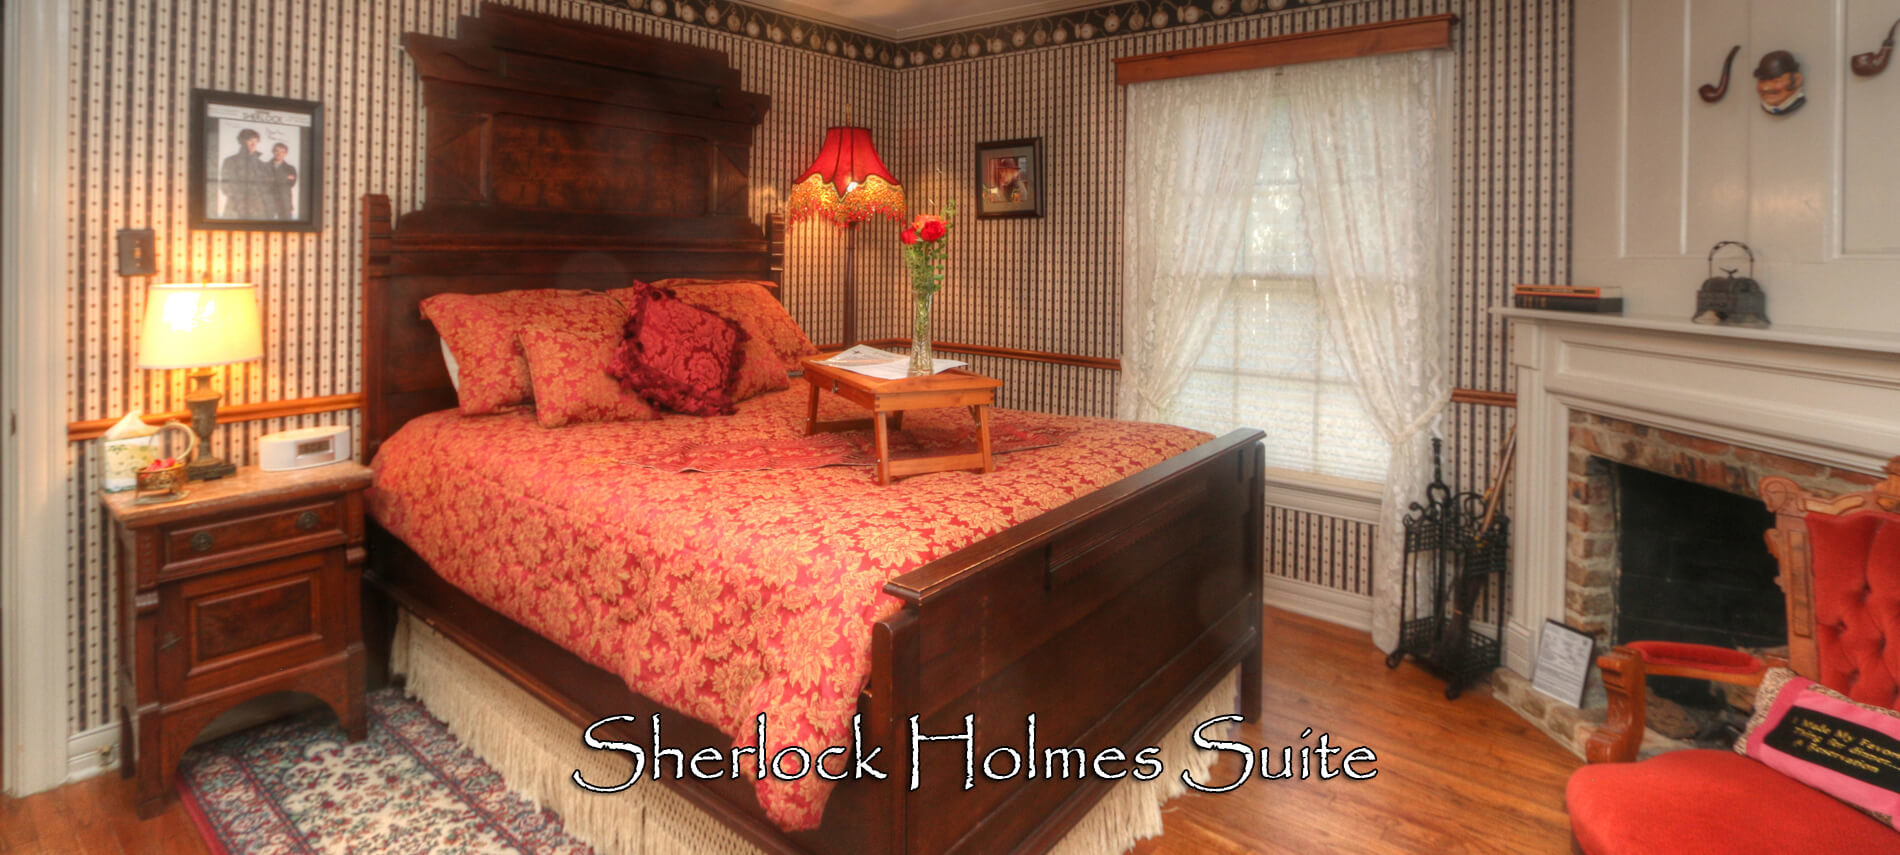 Sherlock Suite with high-back wooden bed covered in red comforter with lap tray and flowers